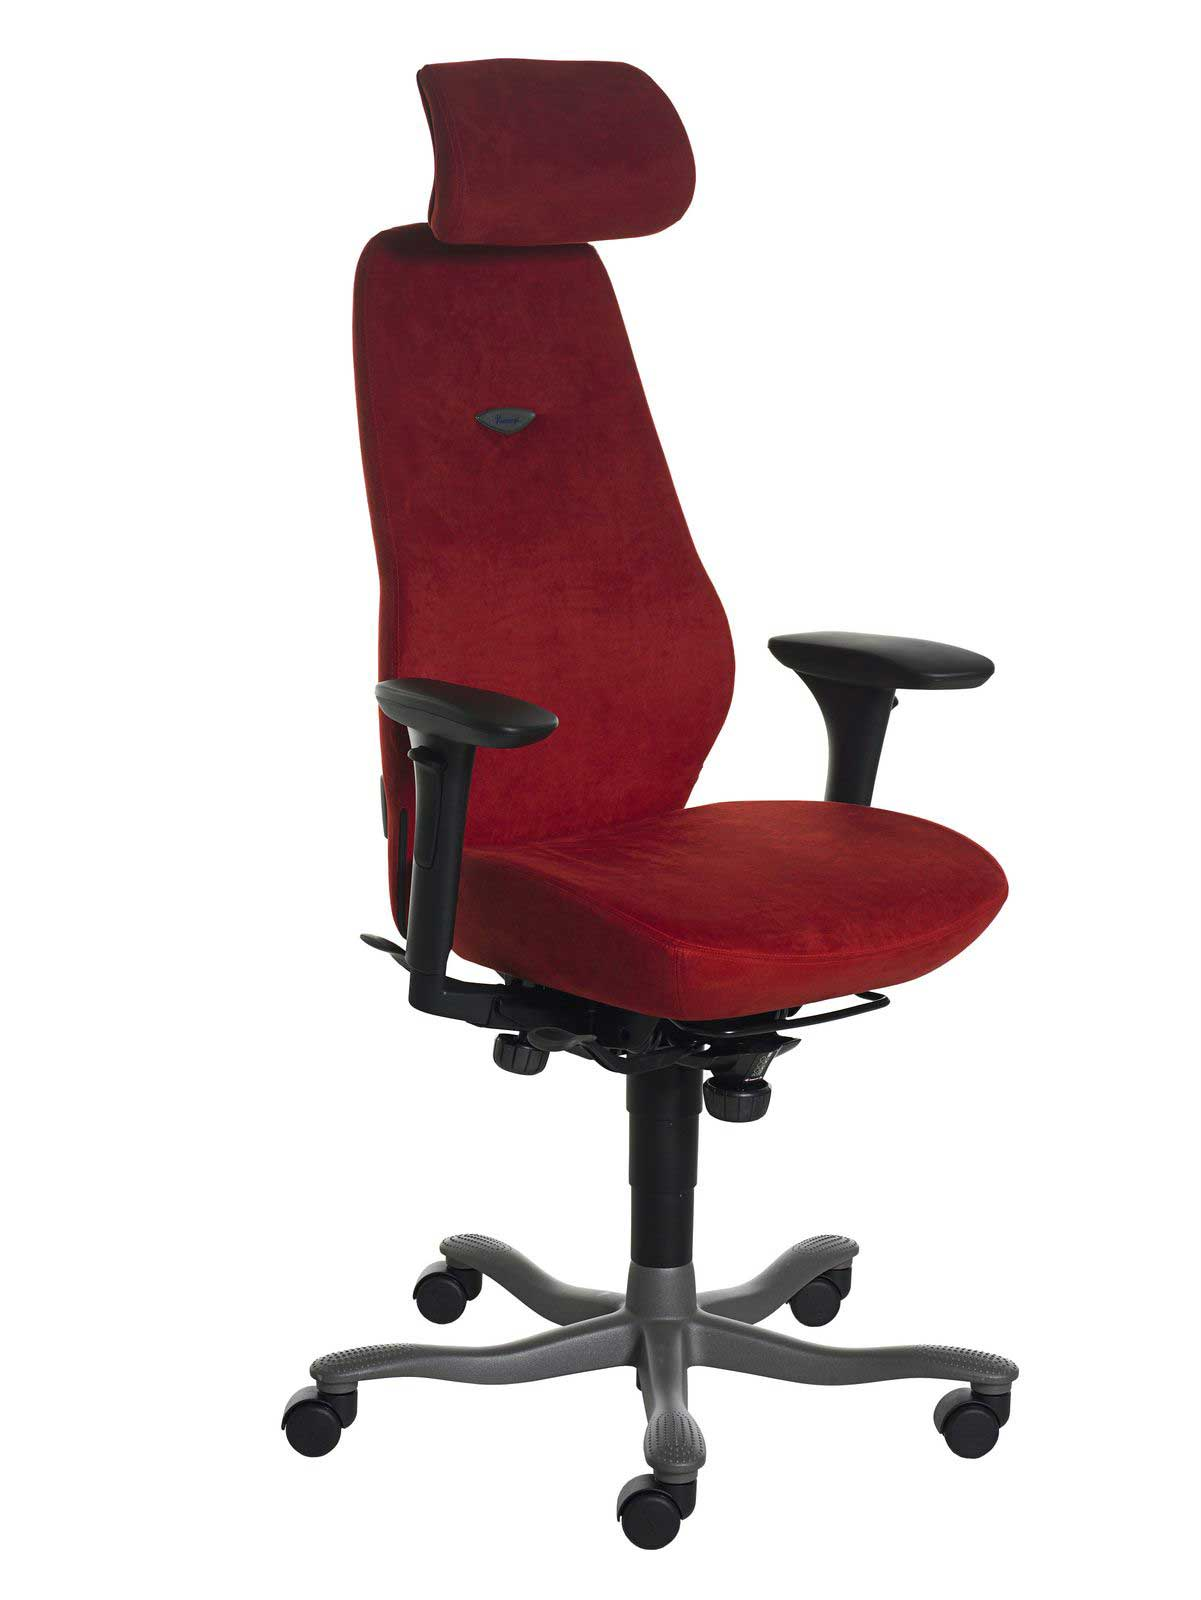 Tall Computer Chair Ergonomic Desk Chairs For Office And Home